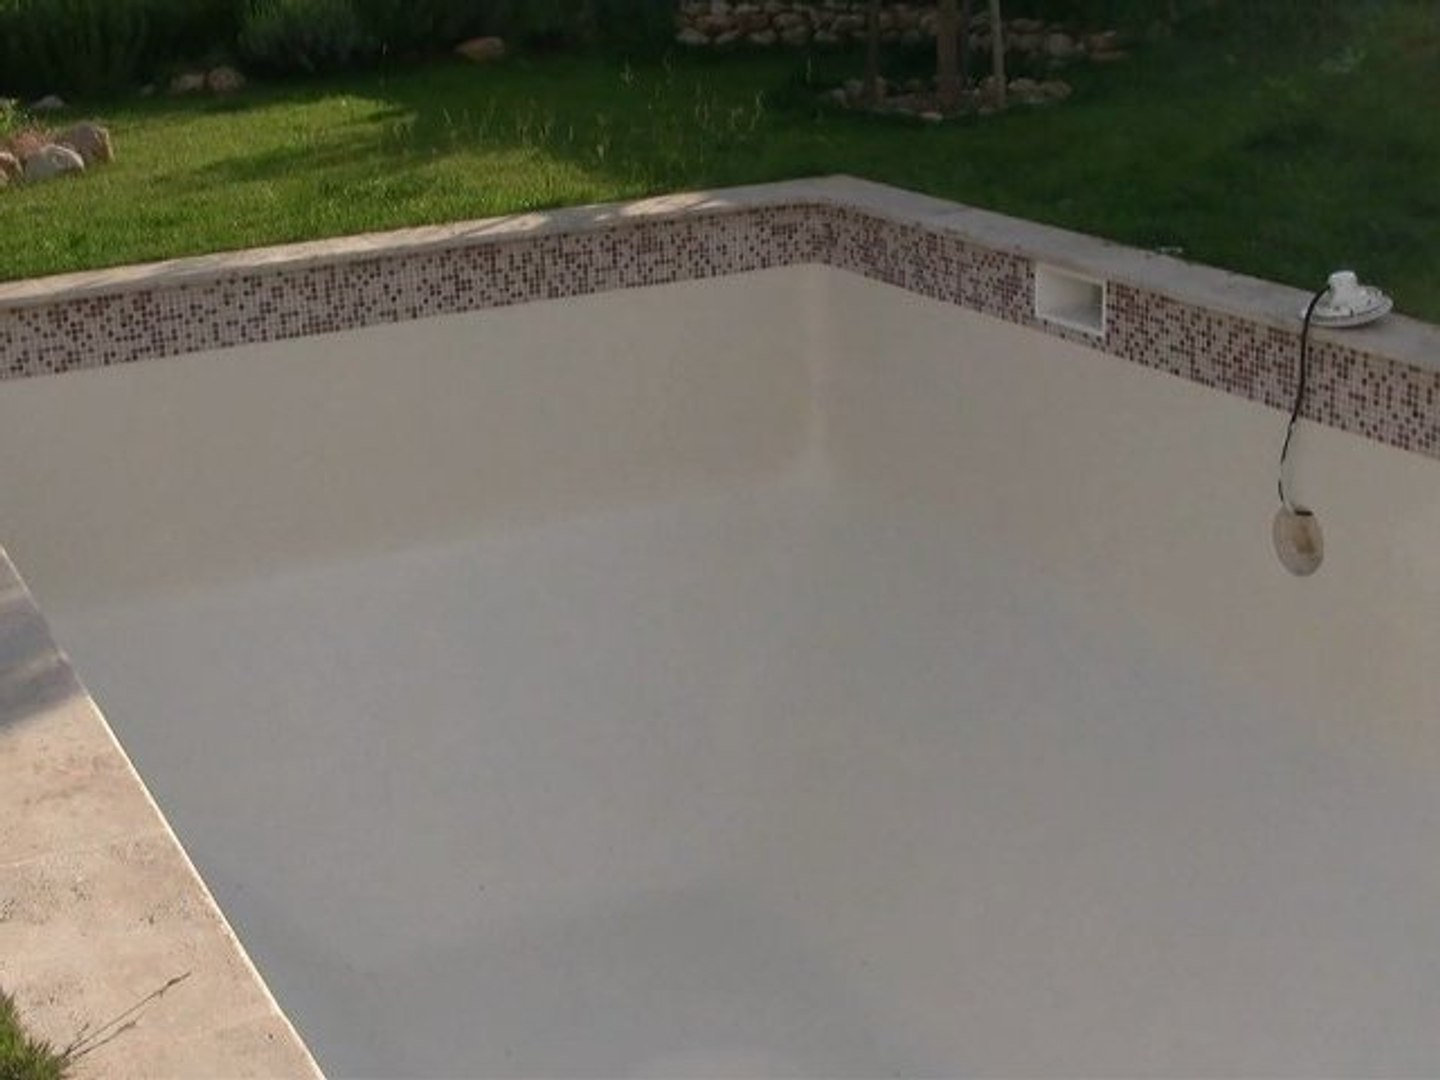 Revetement Piscine Peinture Technique Prix Renovation Enduit Silico Marbreux Sika Video Dailymotion